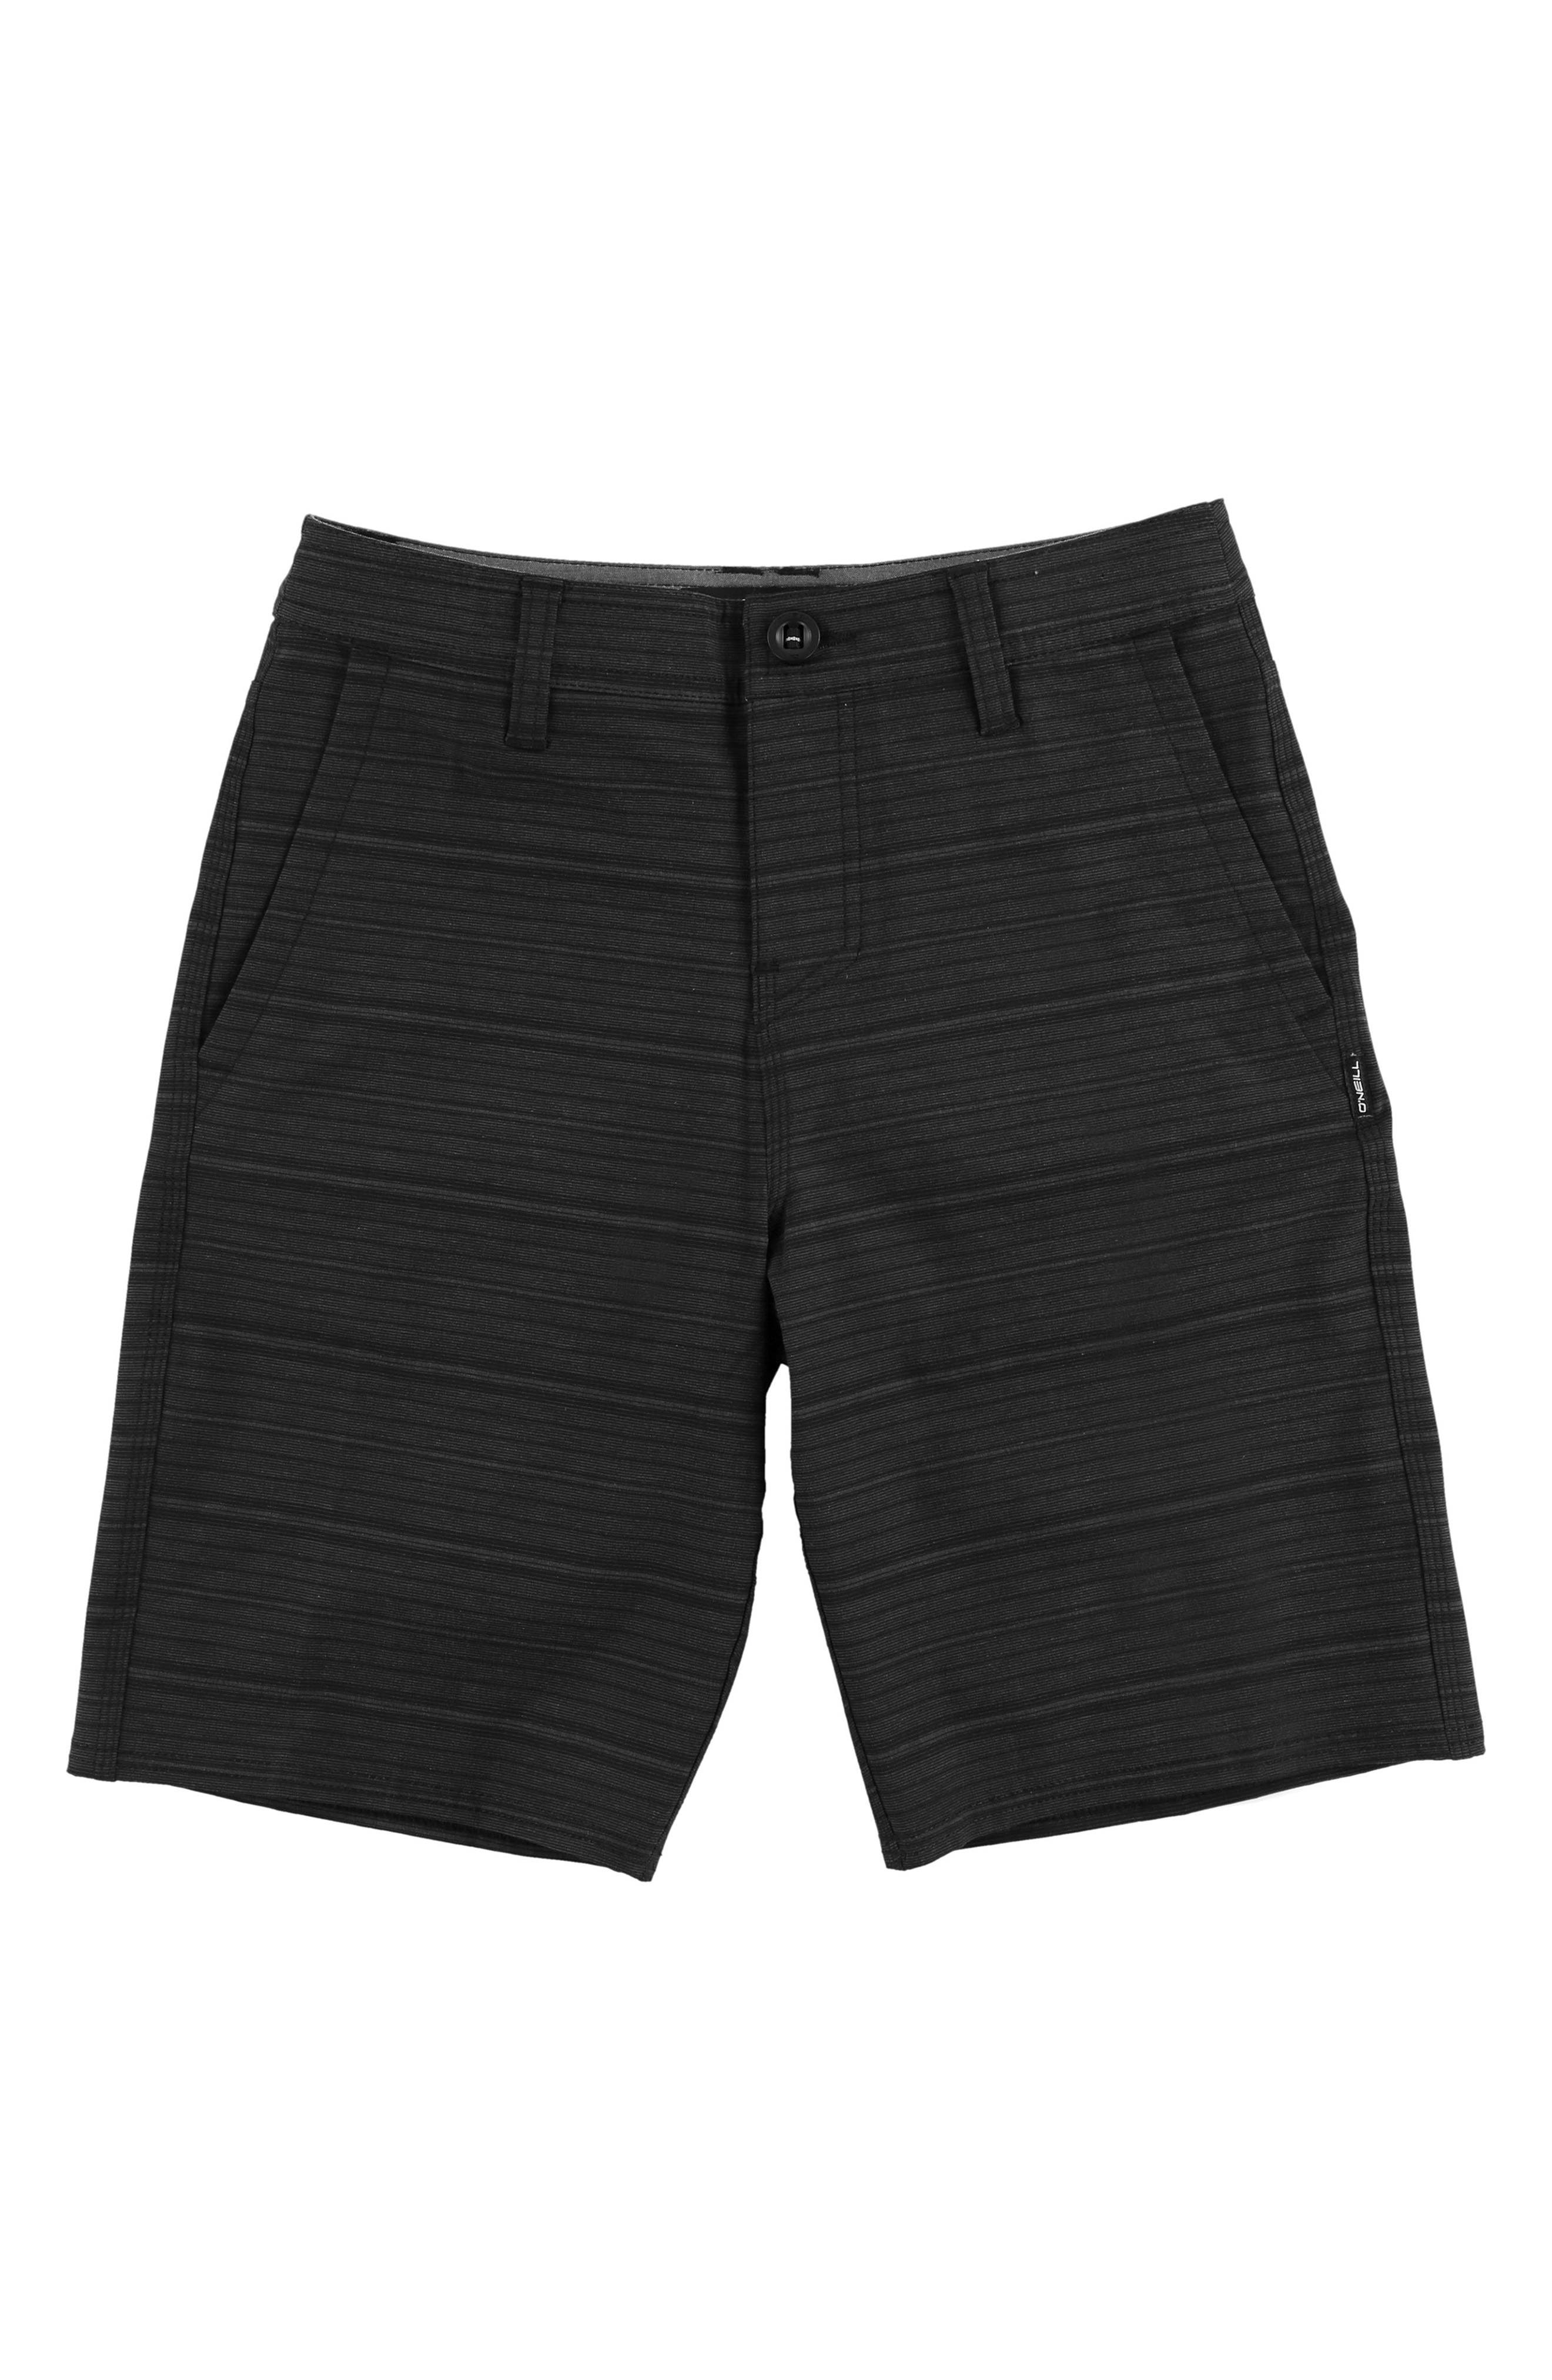 Locked Stripe Hybrid Shorts,                             Main thumbnail 1, color,                             ASPHALT